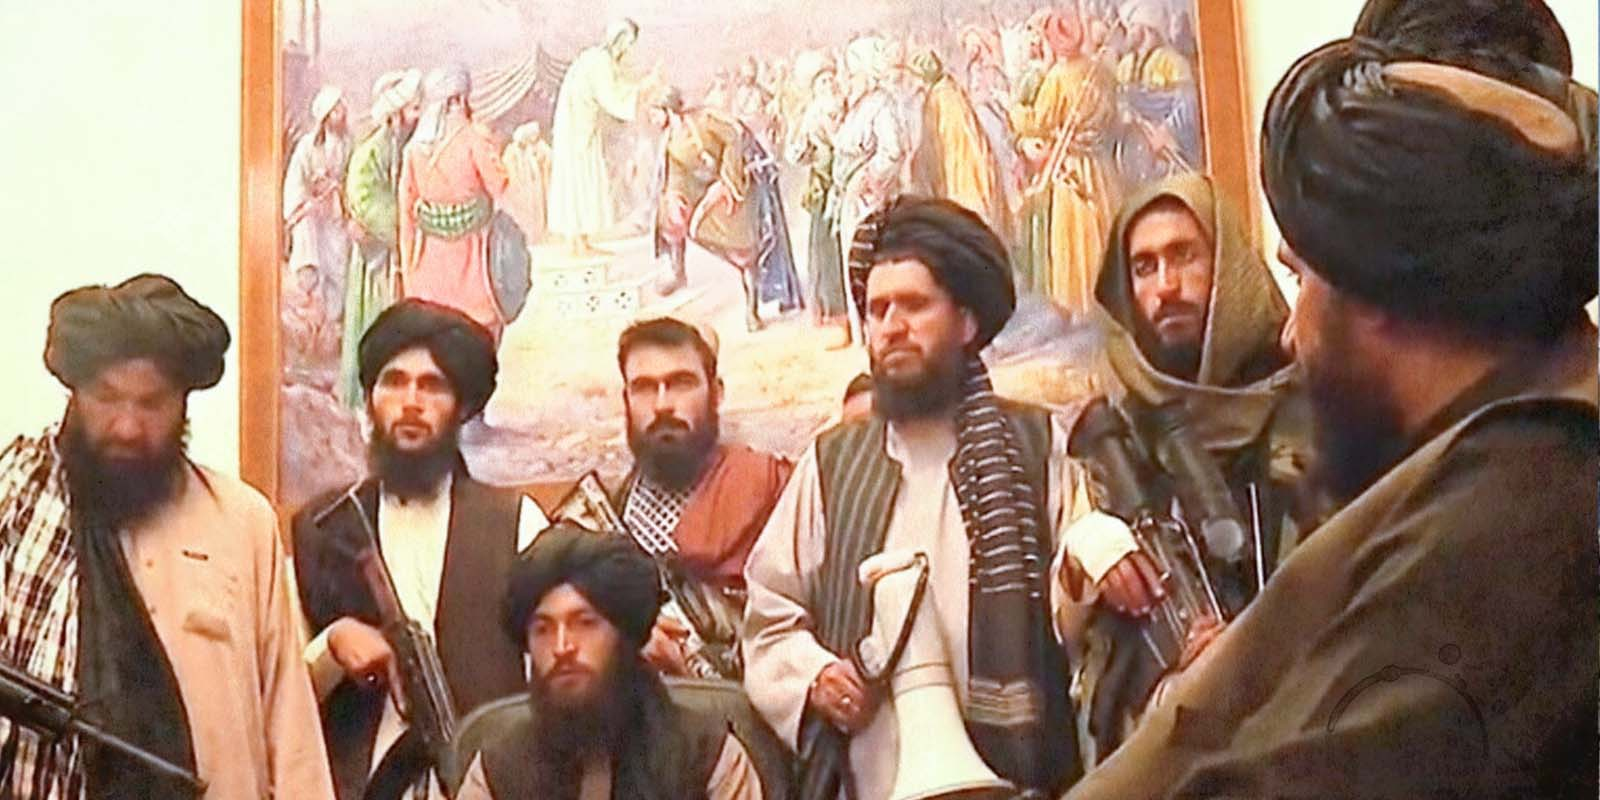 The New Rulers of Afghanistan